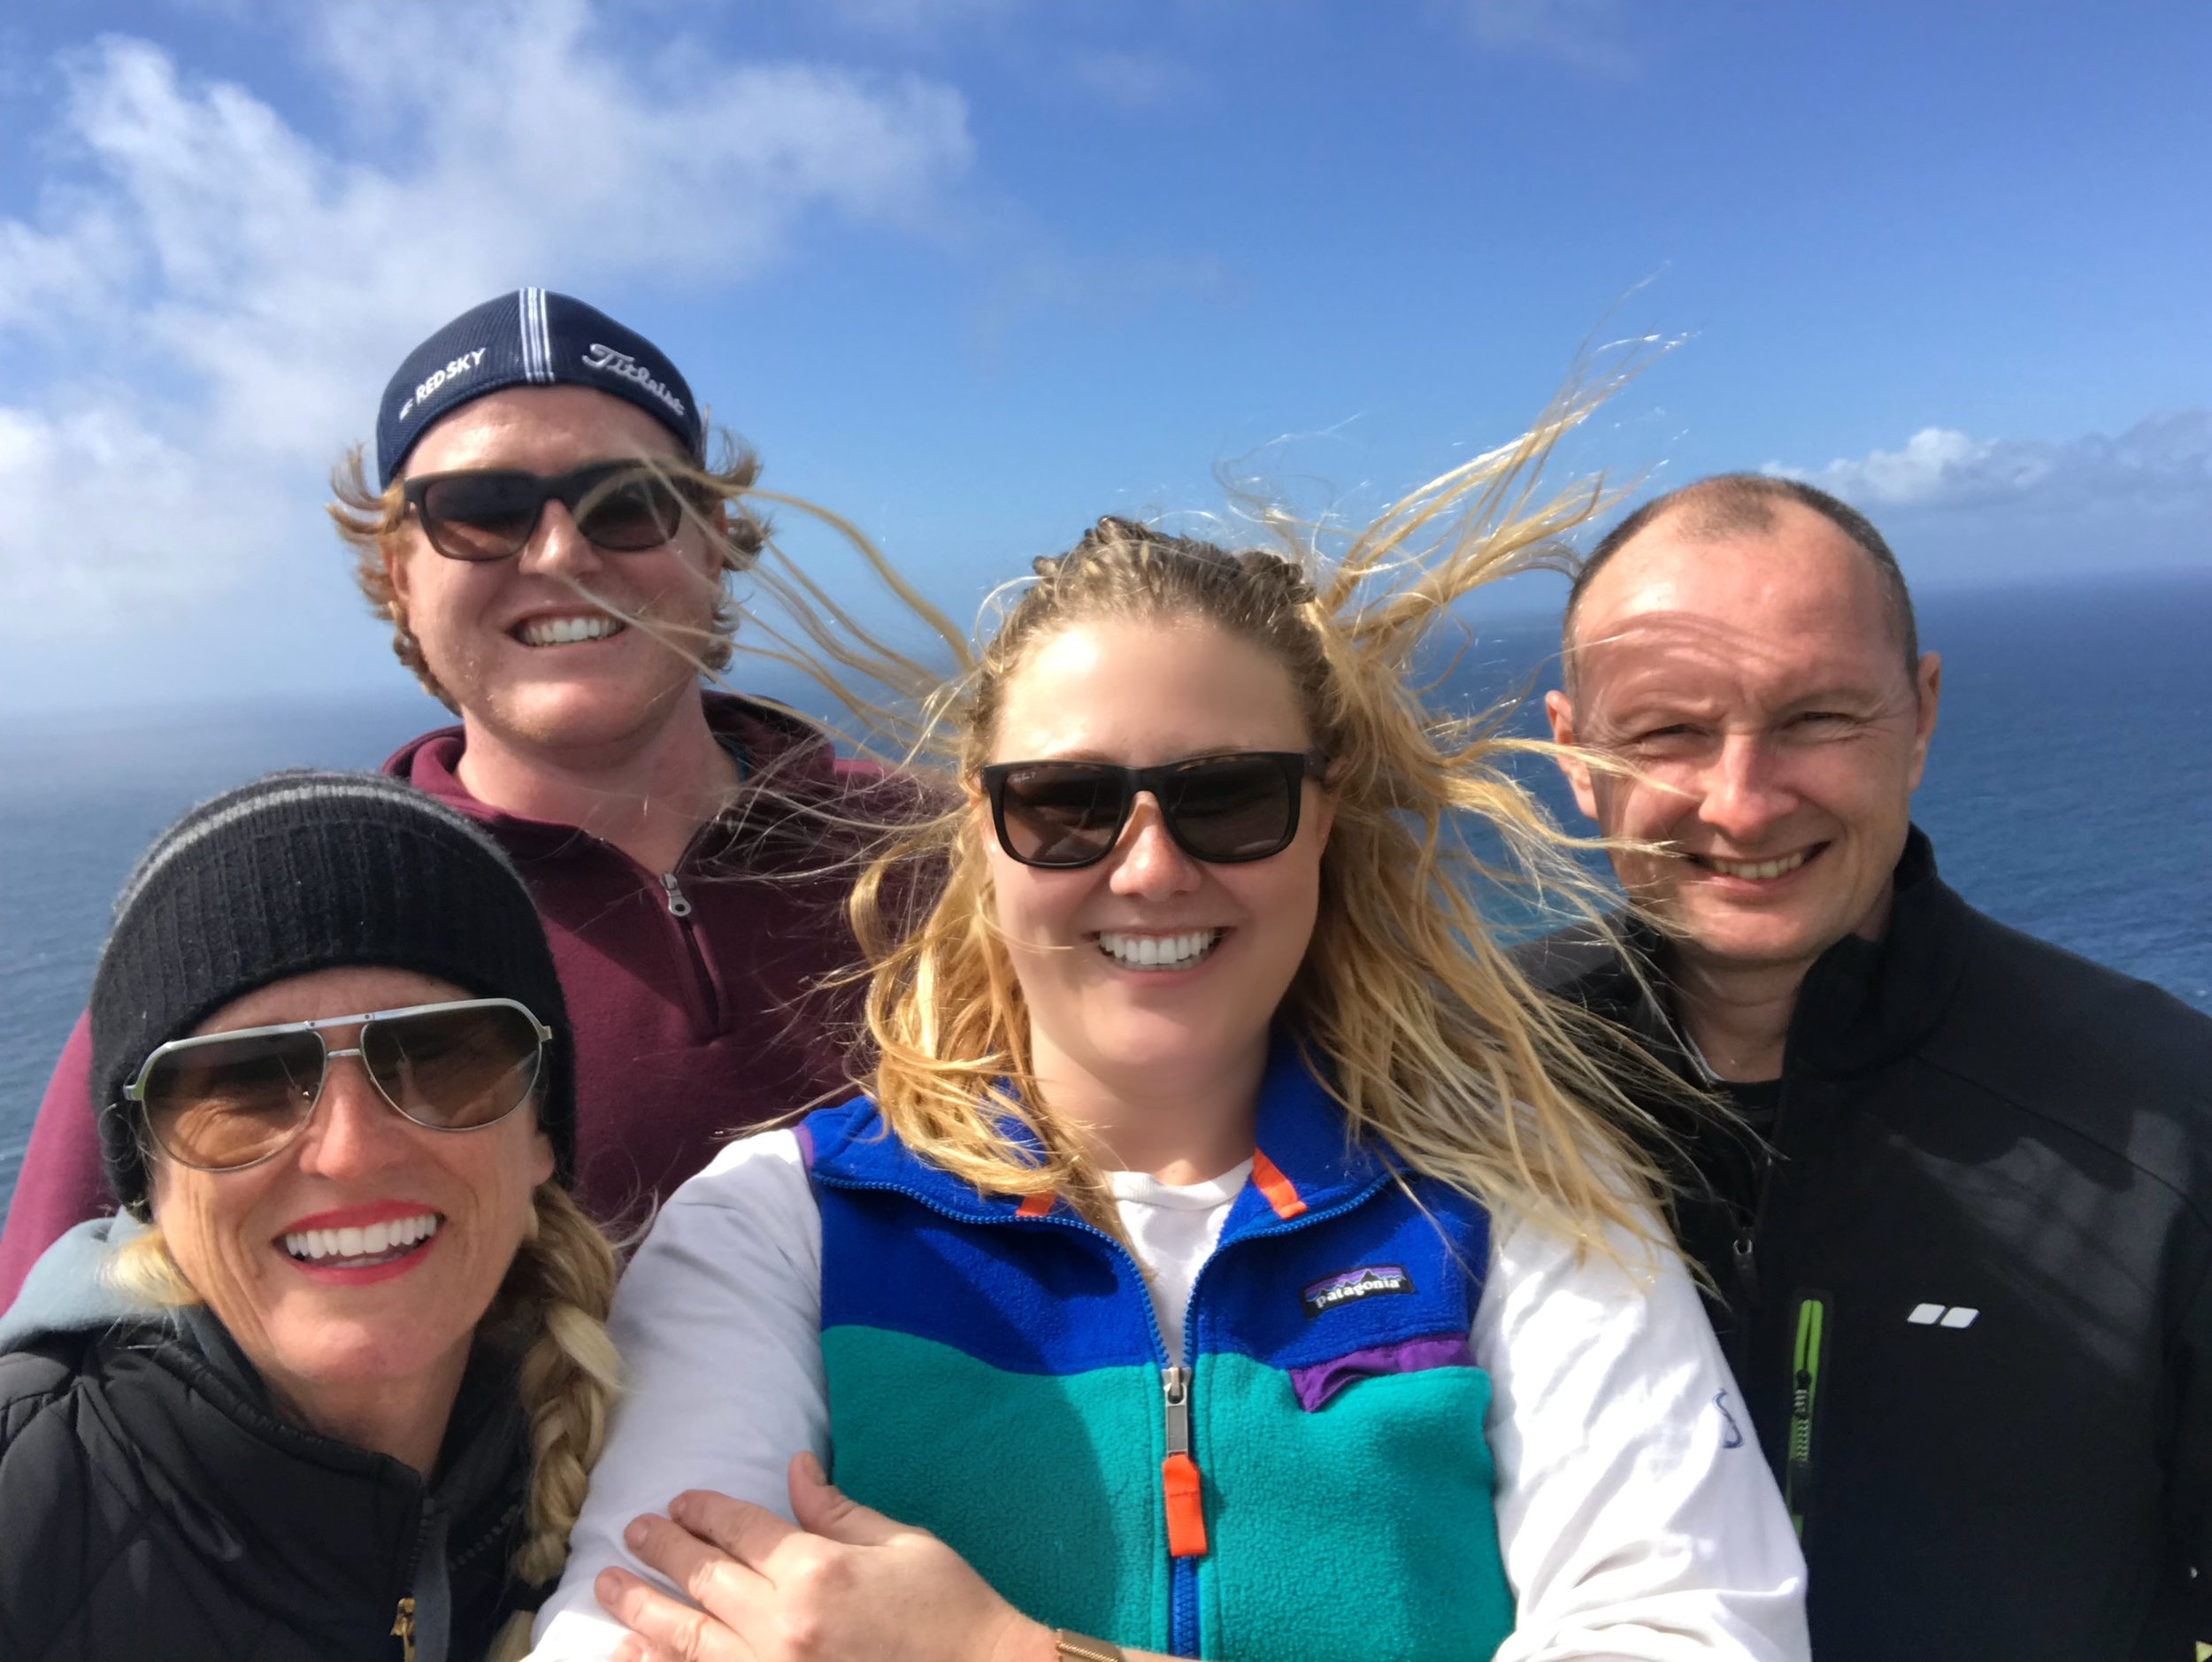 Family pic at the Cliffs of Moher